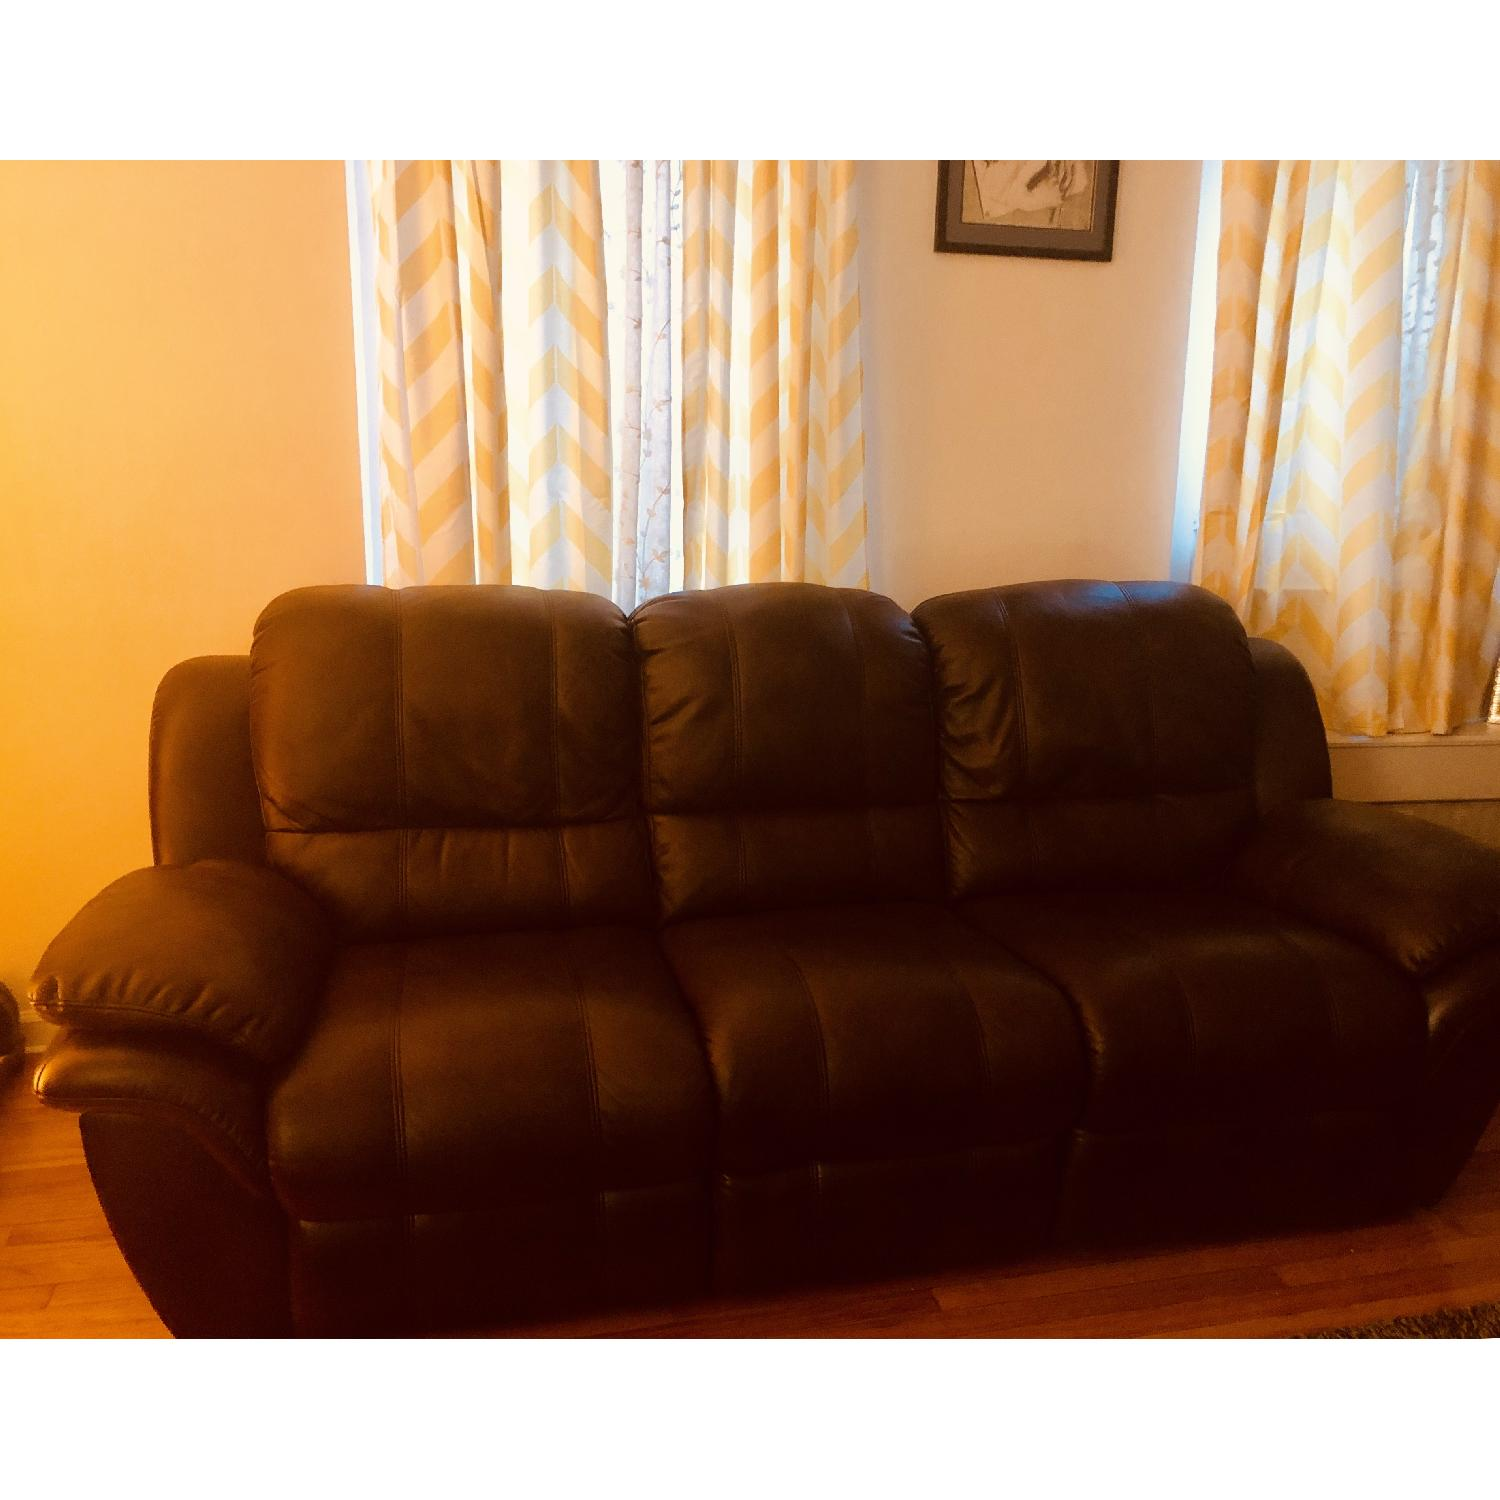 Bob's 3 Seater Recliner Sofa-2